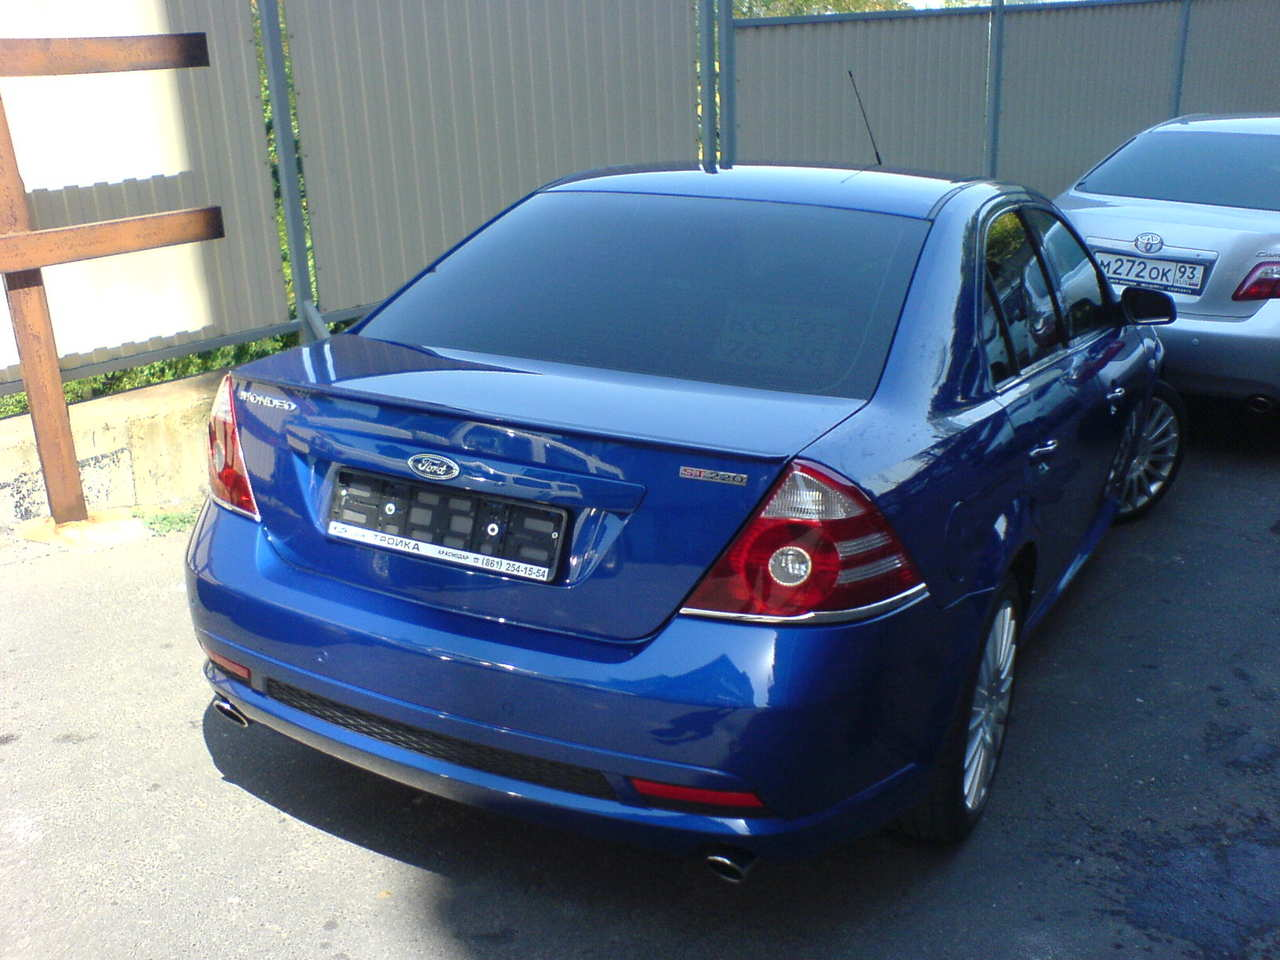 2006 Ford Mondeo #16